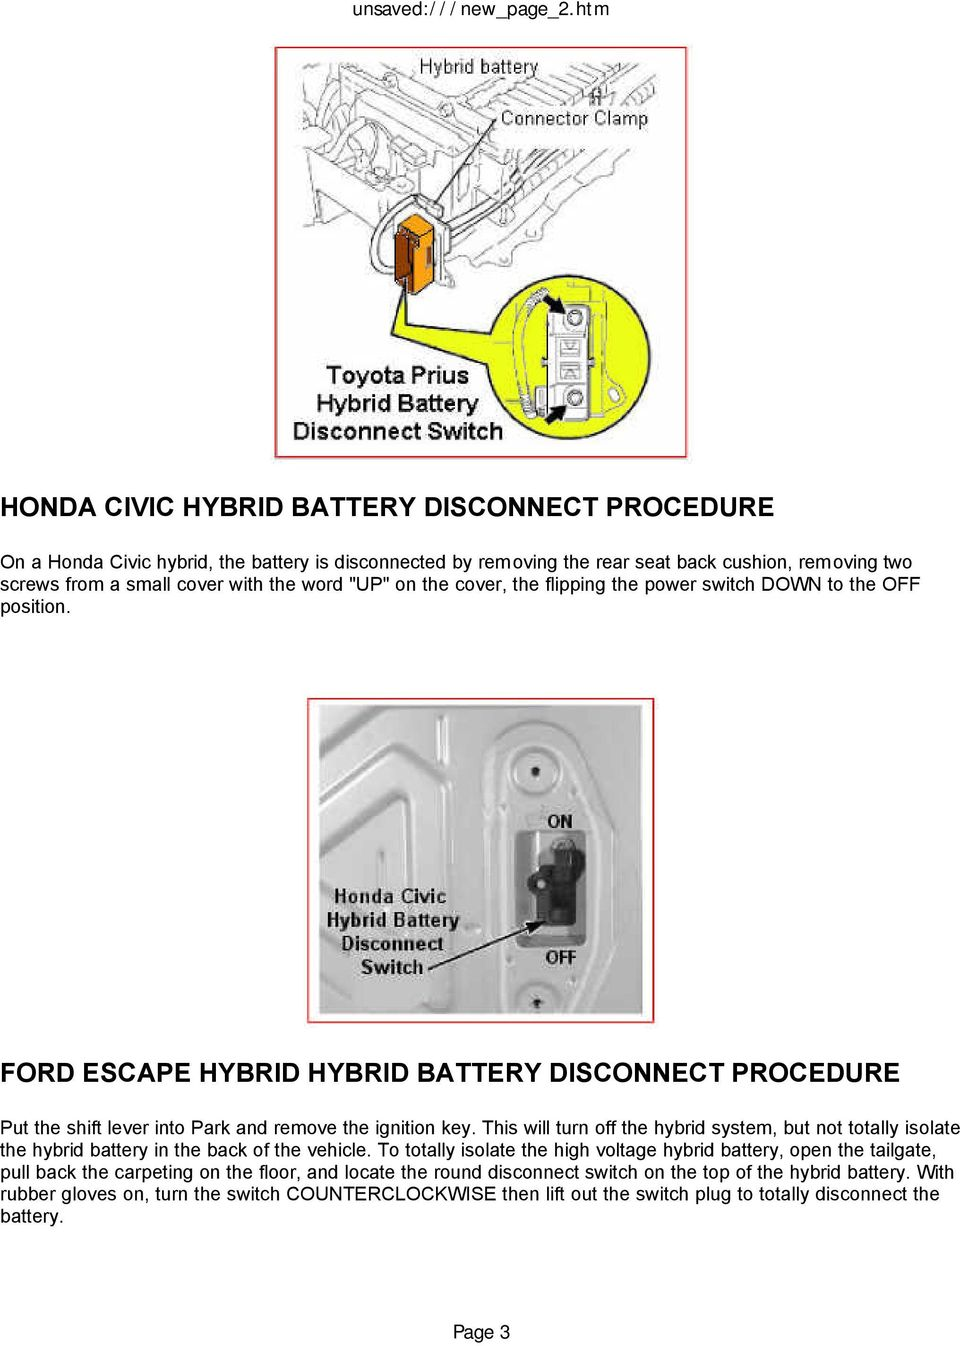 Hybrid Vehicle Safety Hazards Pdf Lexus Rx450h Wiring Diagram This Will Turn Off The System But Not Totally Isolate Battery In